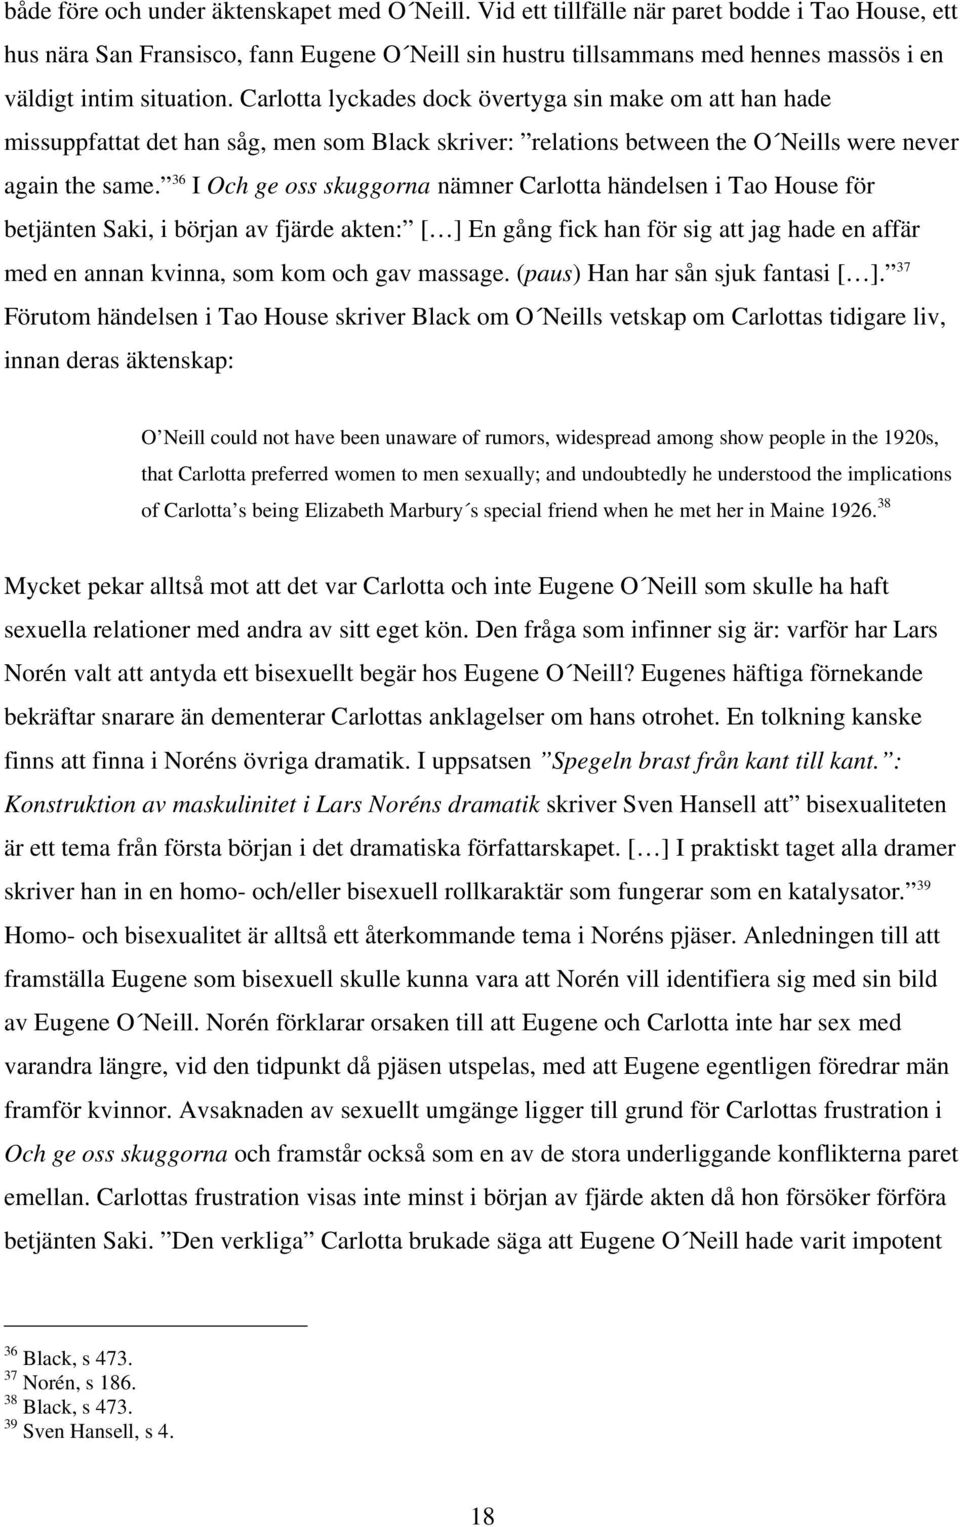 Carlotta lyckades dock övertyga sin make om att han hade missuppfattat det han såg, men som Black skriver: relations between the O Neills were never again the same.